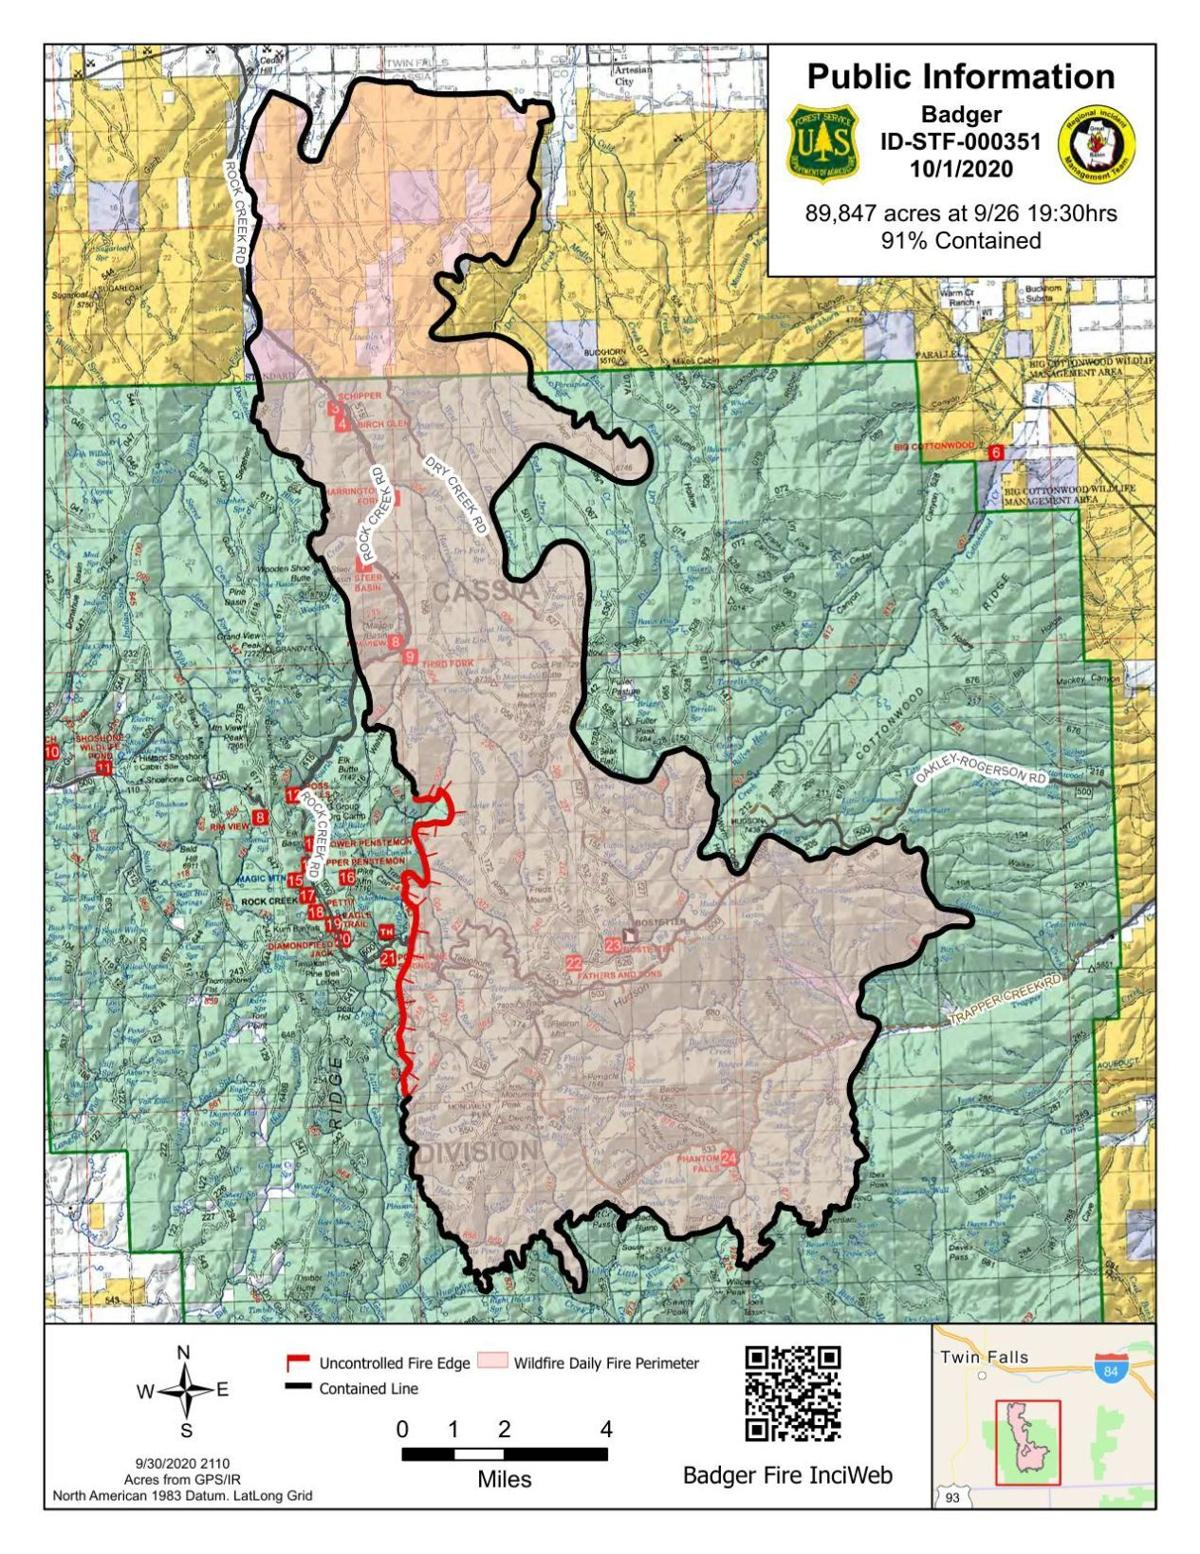 Badger Fire Friday map